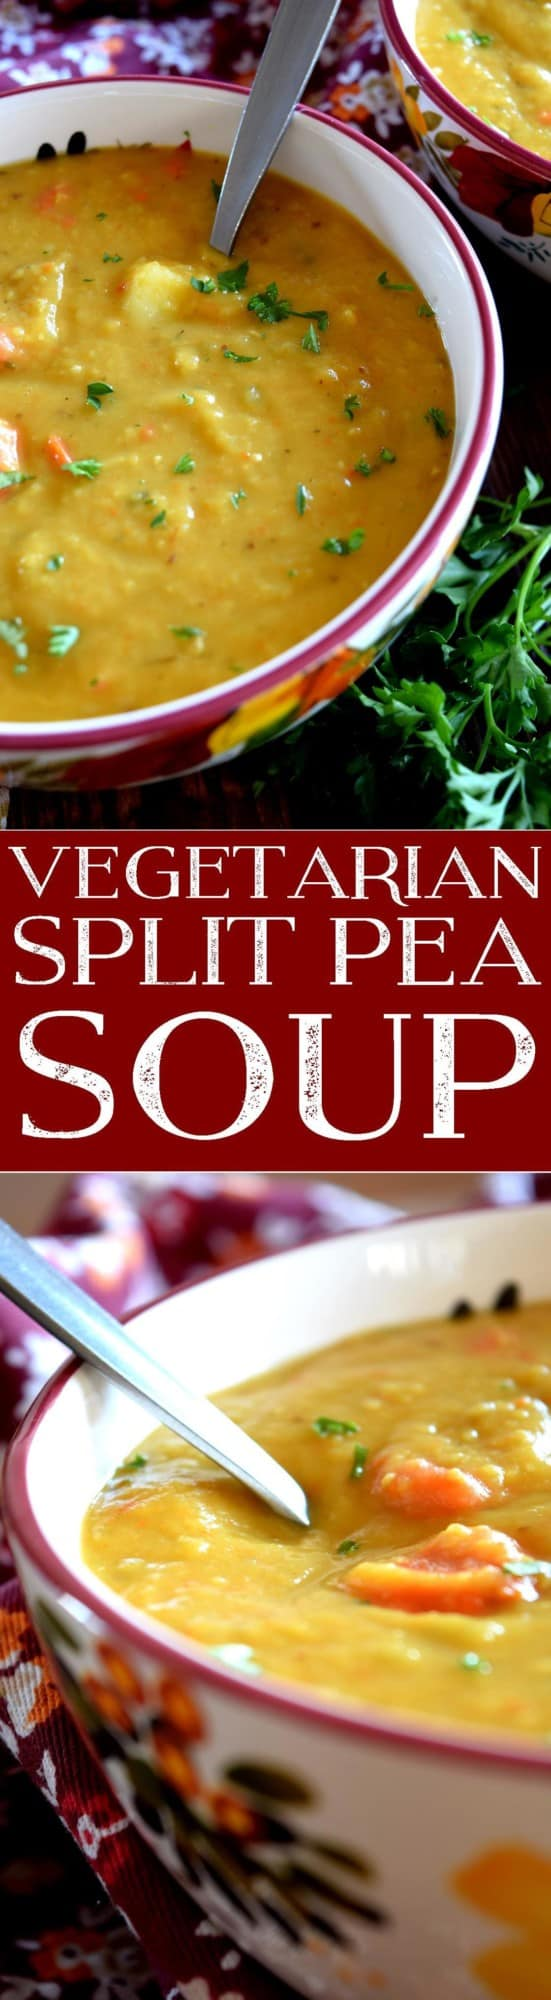 vegetarian-split-pea-soup